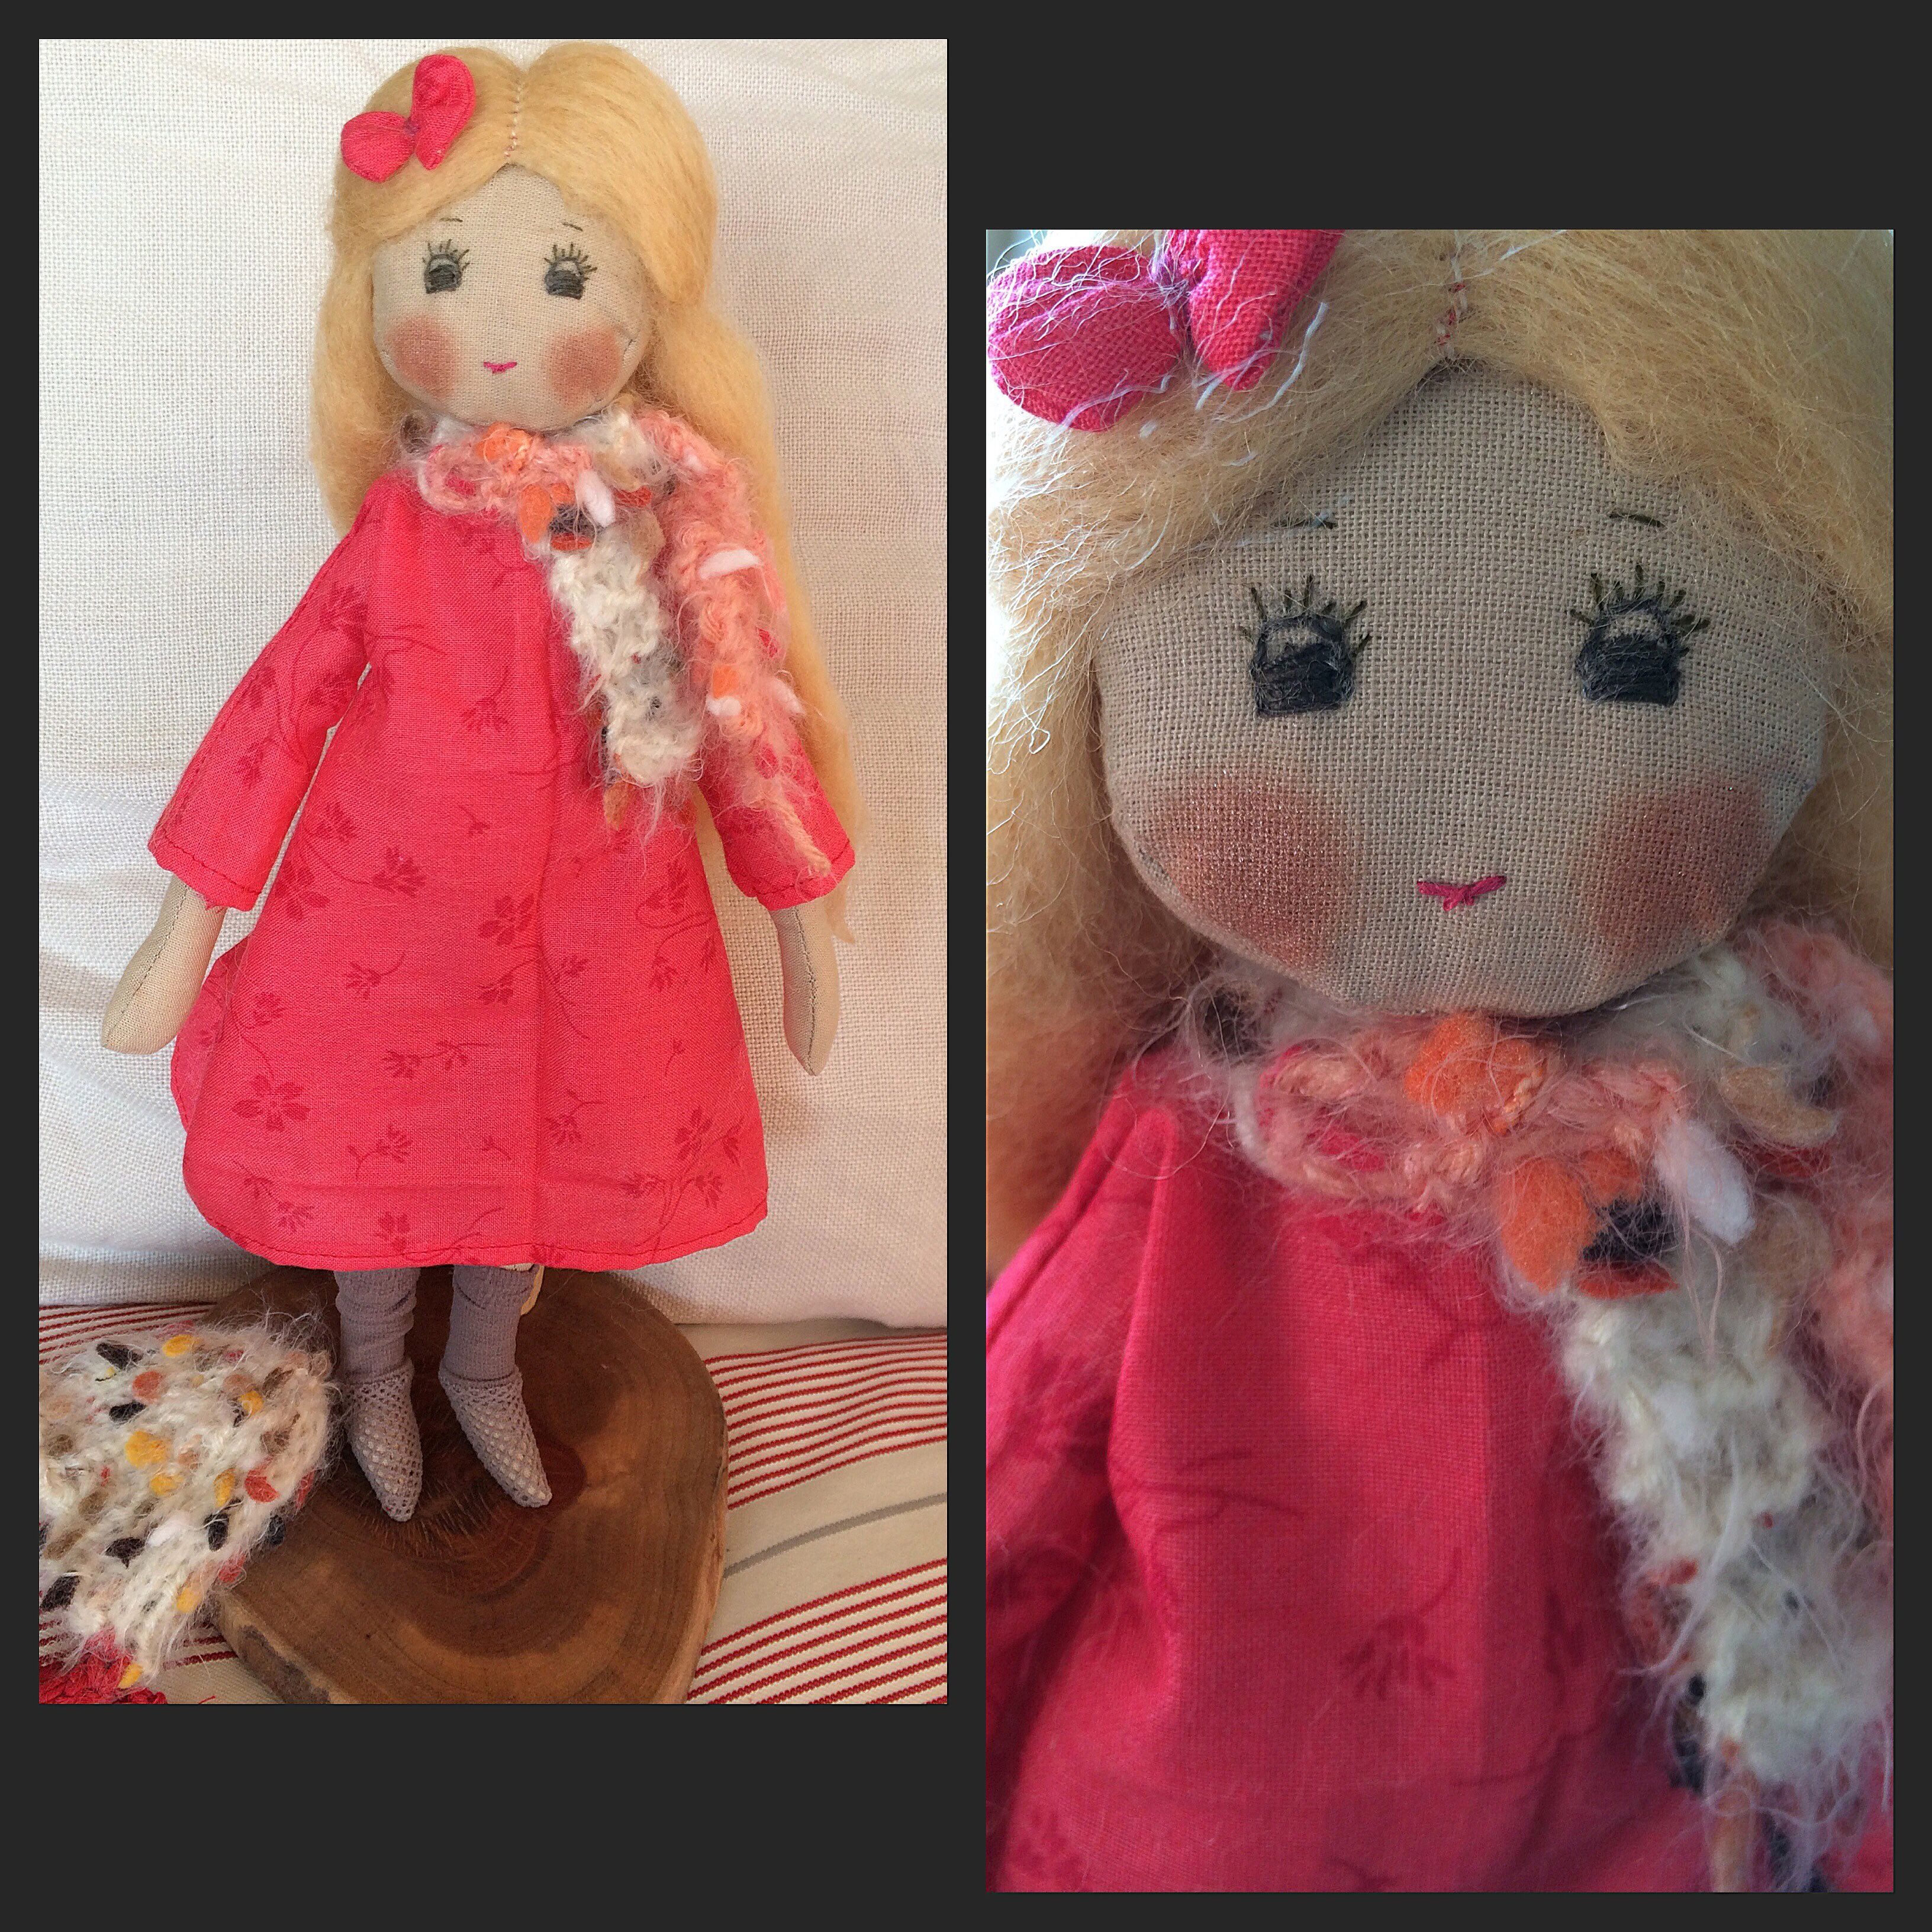 Natural fabricdoll. Wool, cotton, doll, fabricdoll, Design, handmade.